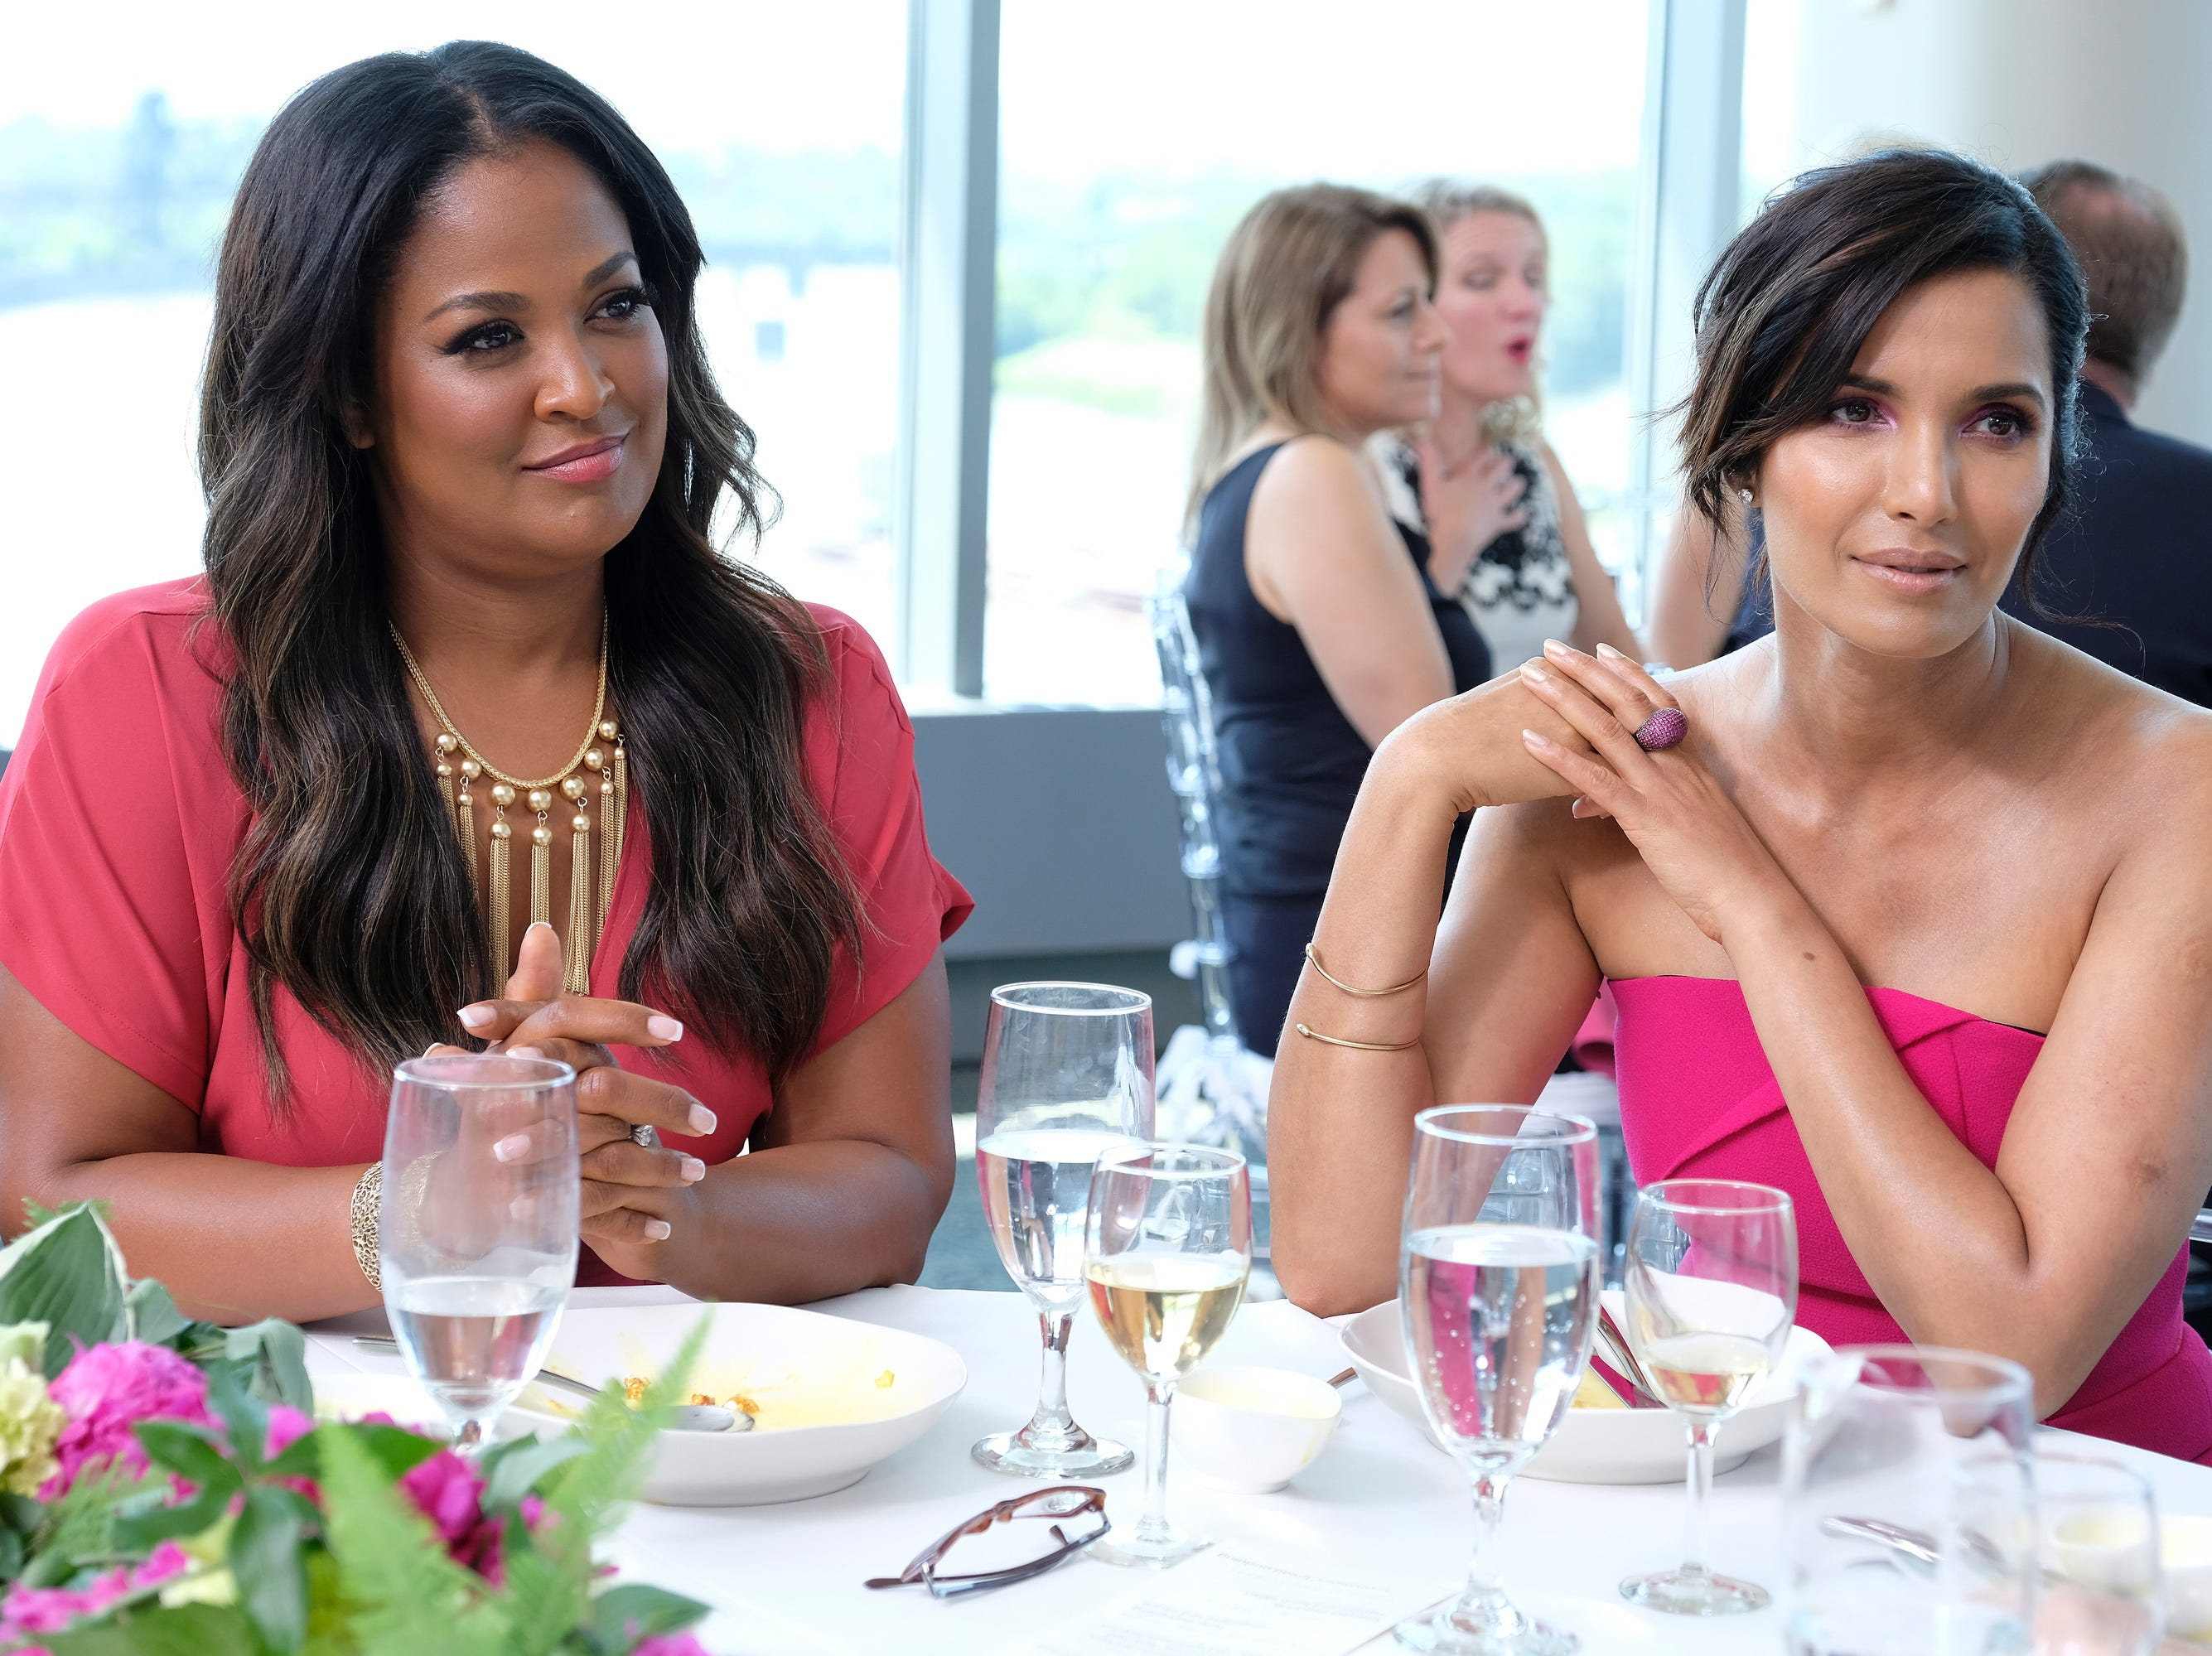 (From left to right): Muhammad Ali's daughter Laila Ali and host Padma Lakshmi on episode 11 of Bravo's 'Top Chef:' Kentucky season.